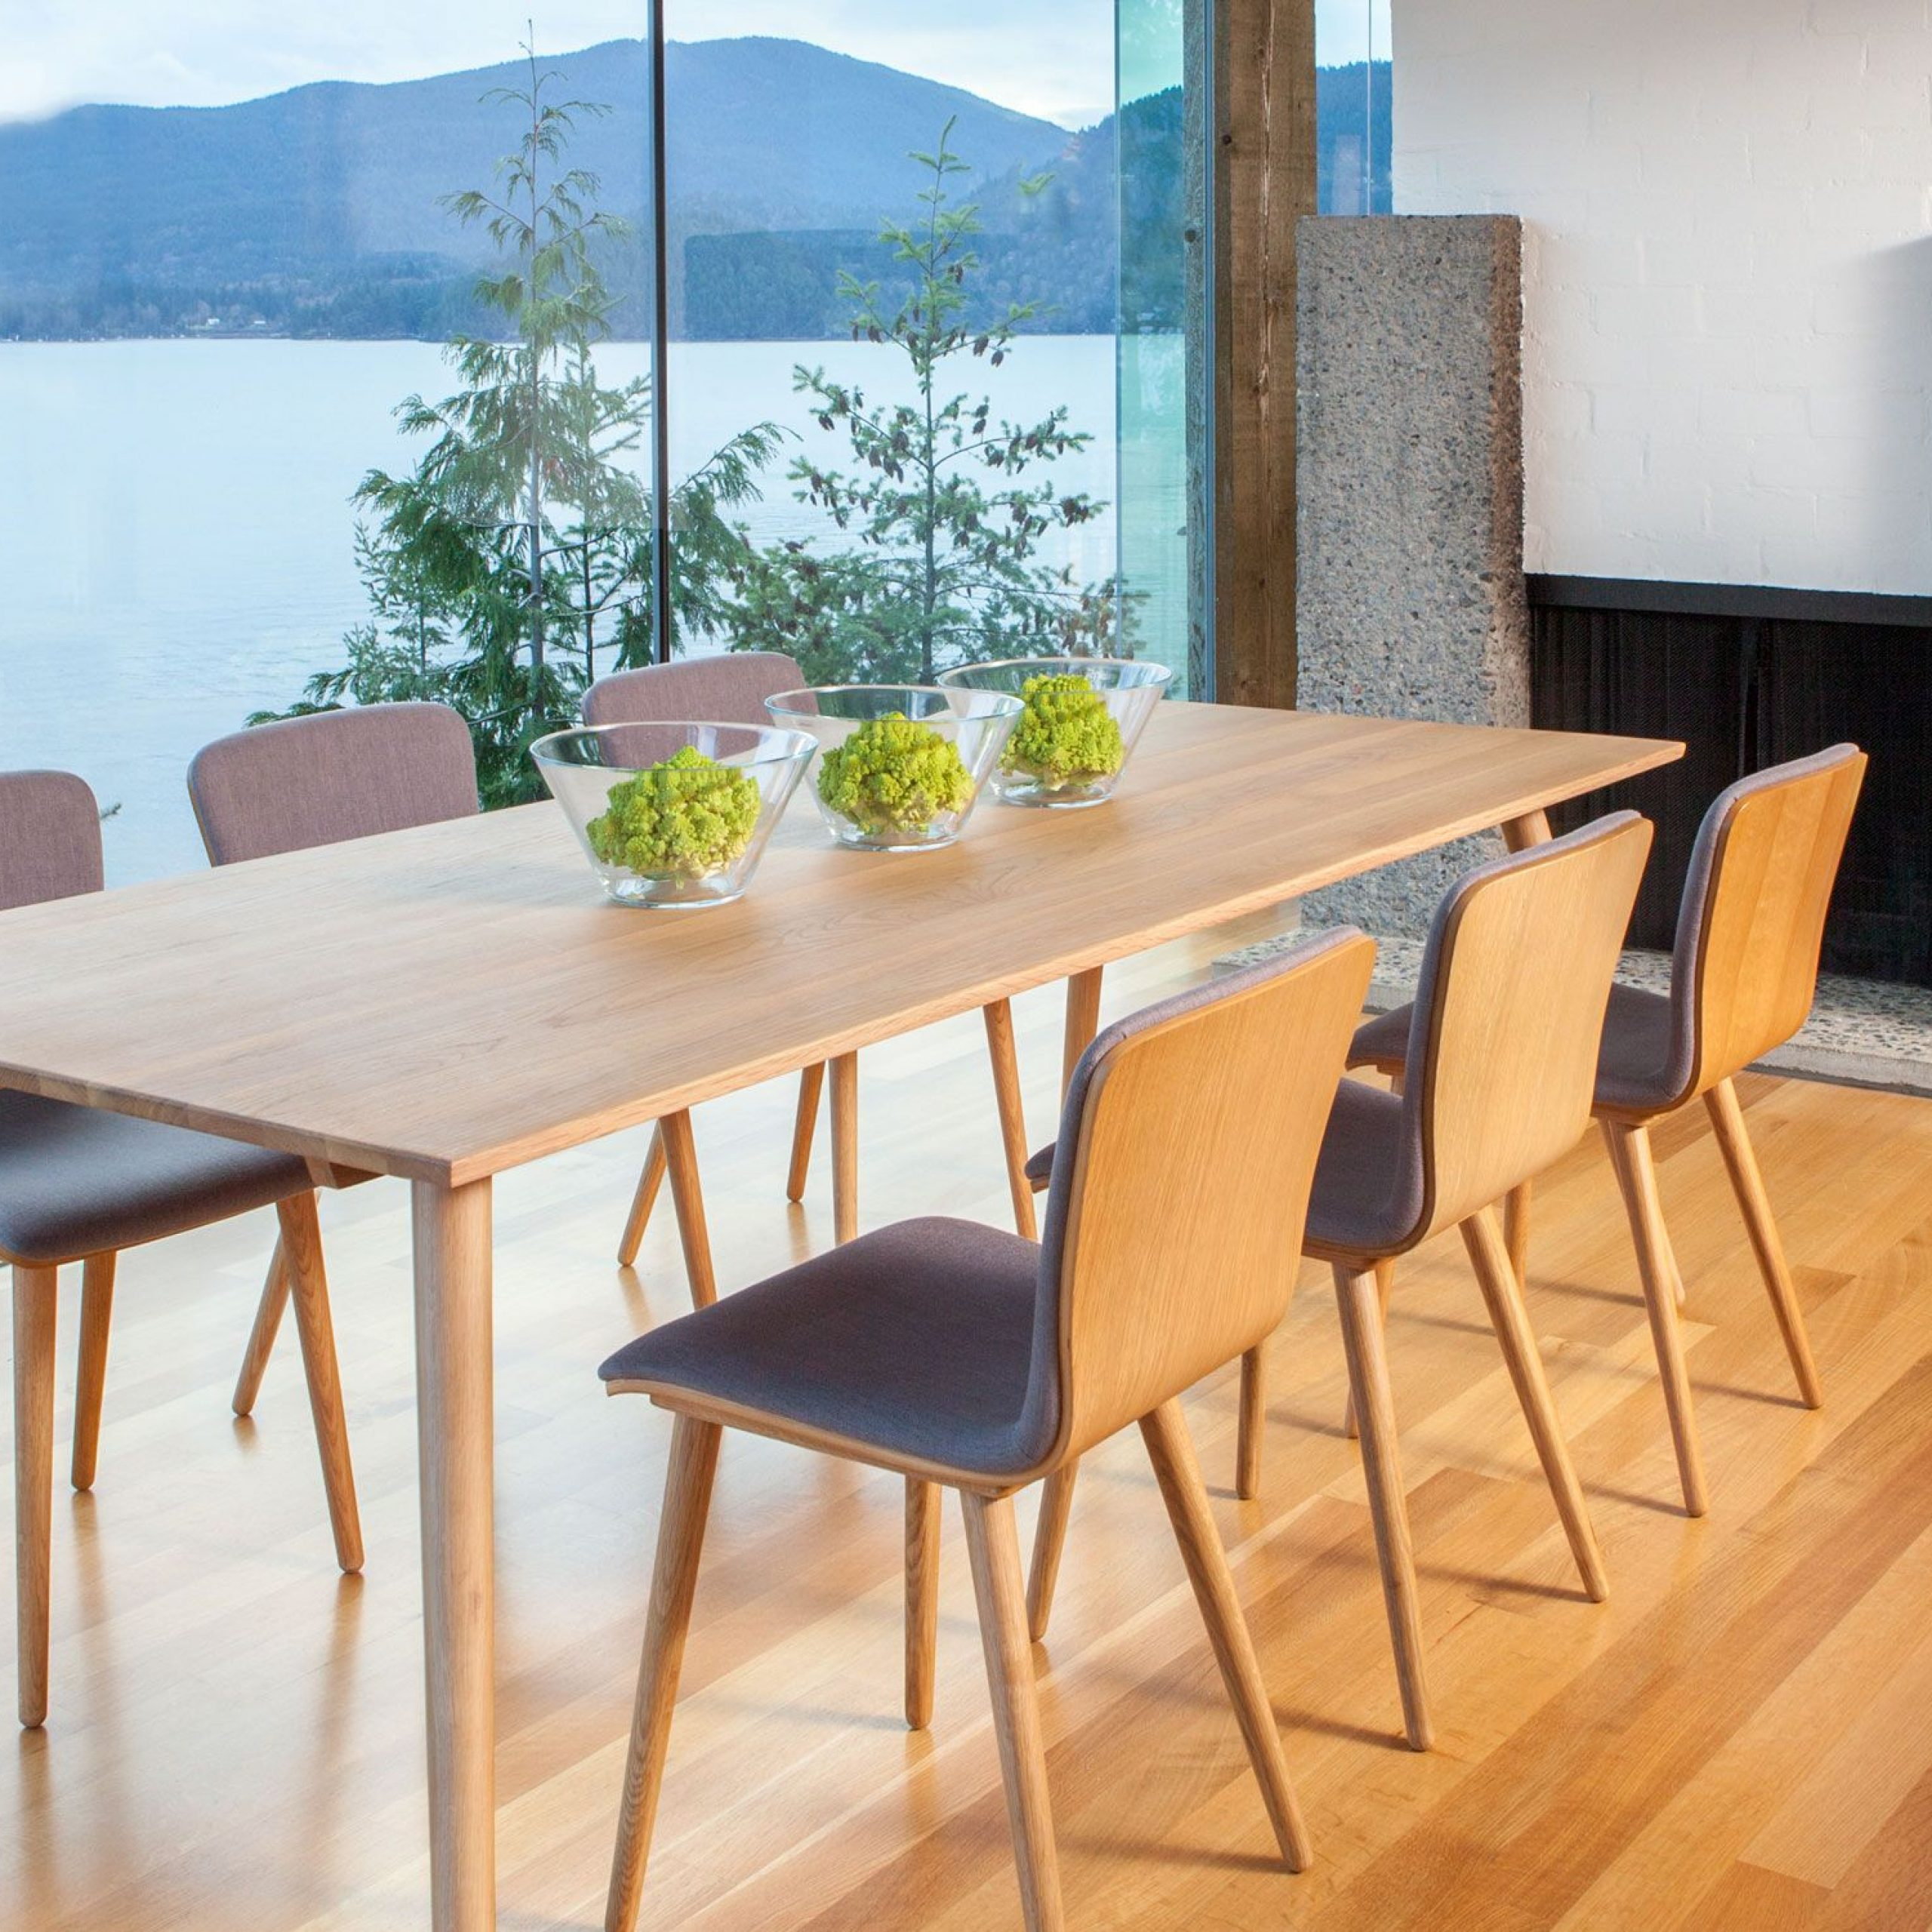 Favorite Pin On Dining Table Intended For Rustic Mid Century Modern 6 Seating Dining Tables In White And Natural Wood (Gallery 4 of 30)